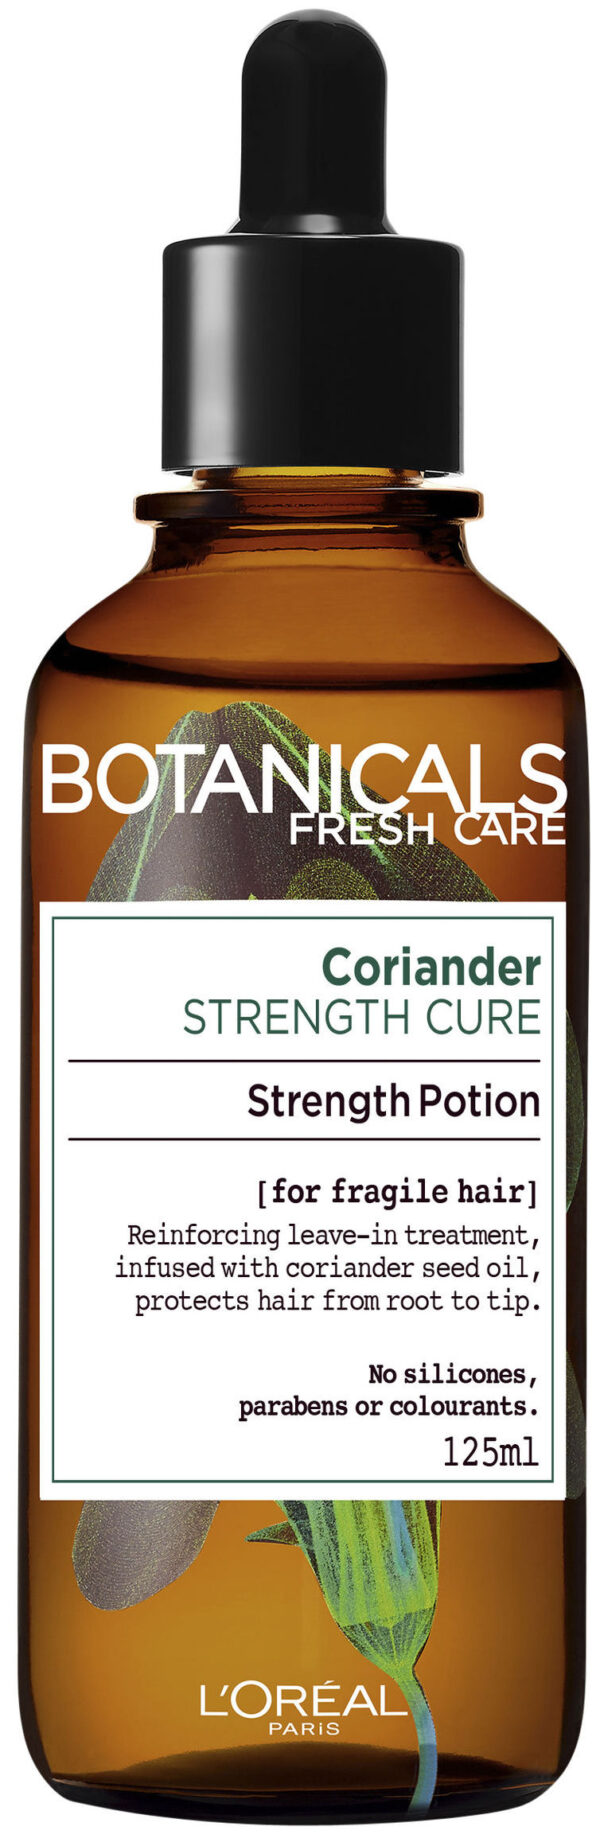 "סרום טבעי לשיער 125 מ""ל L'Oréal Paris Botanicals Fresh Care Coriander Strength Cure Potion"